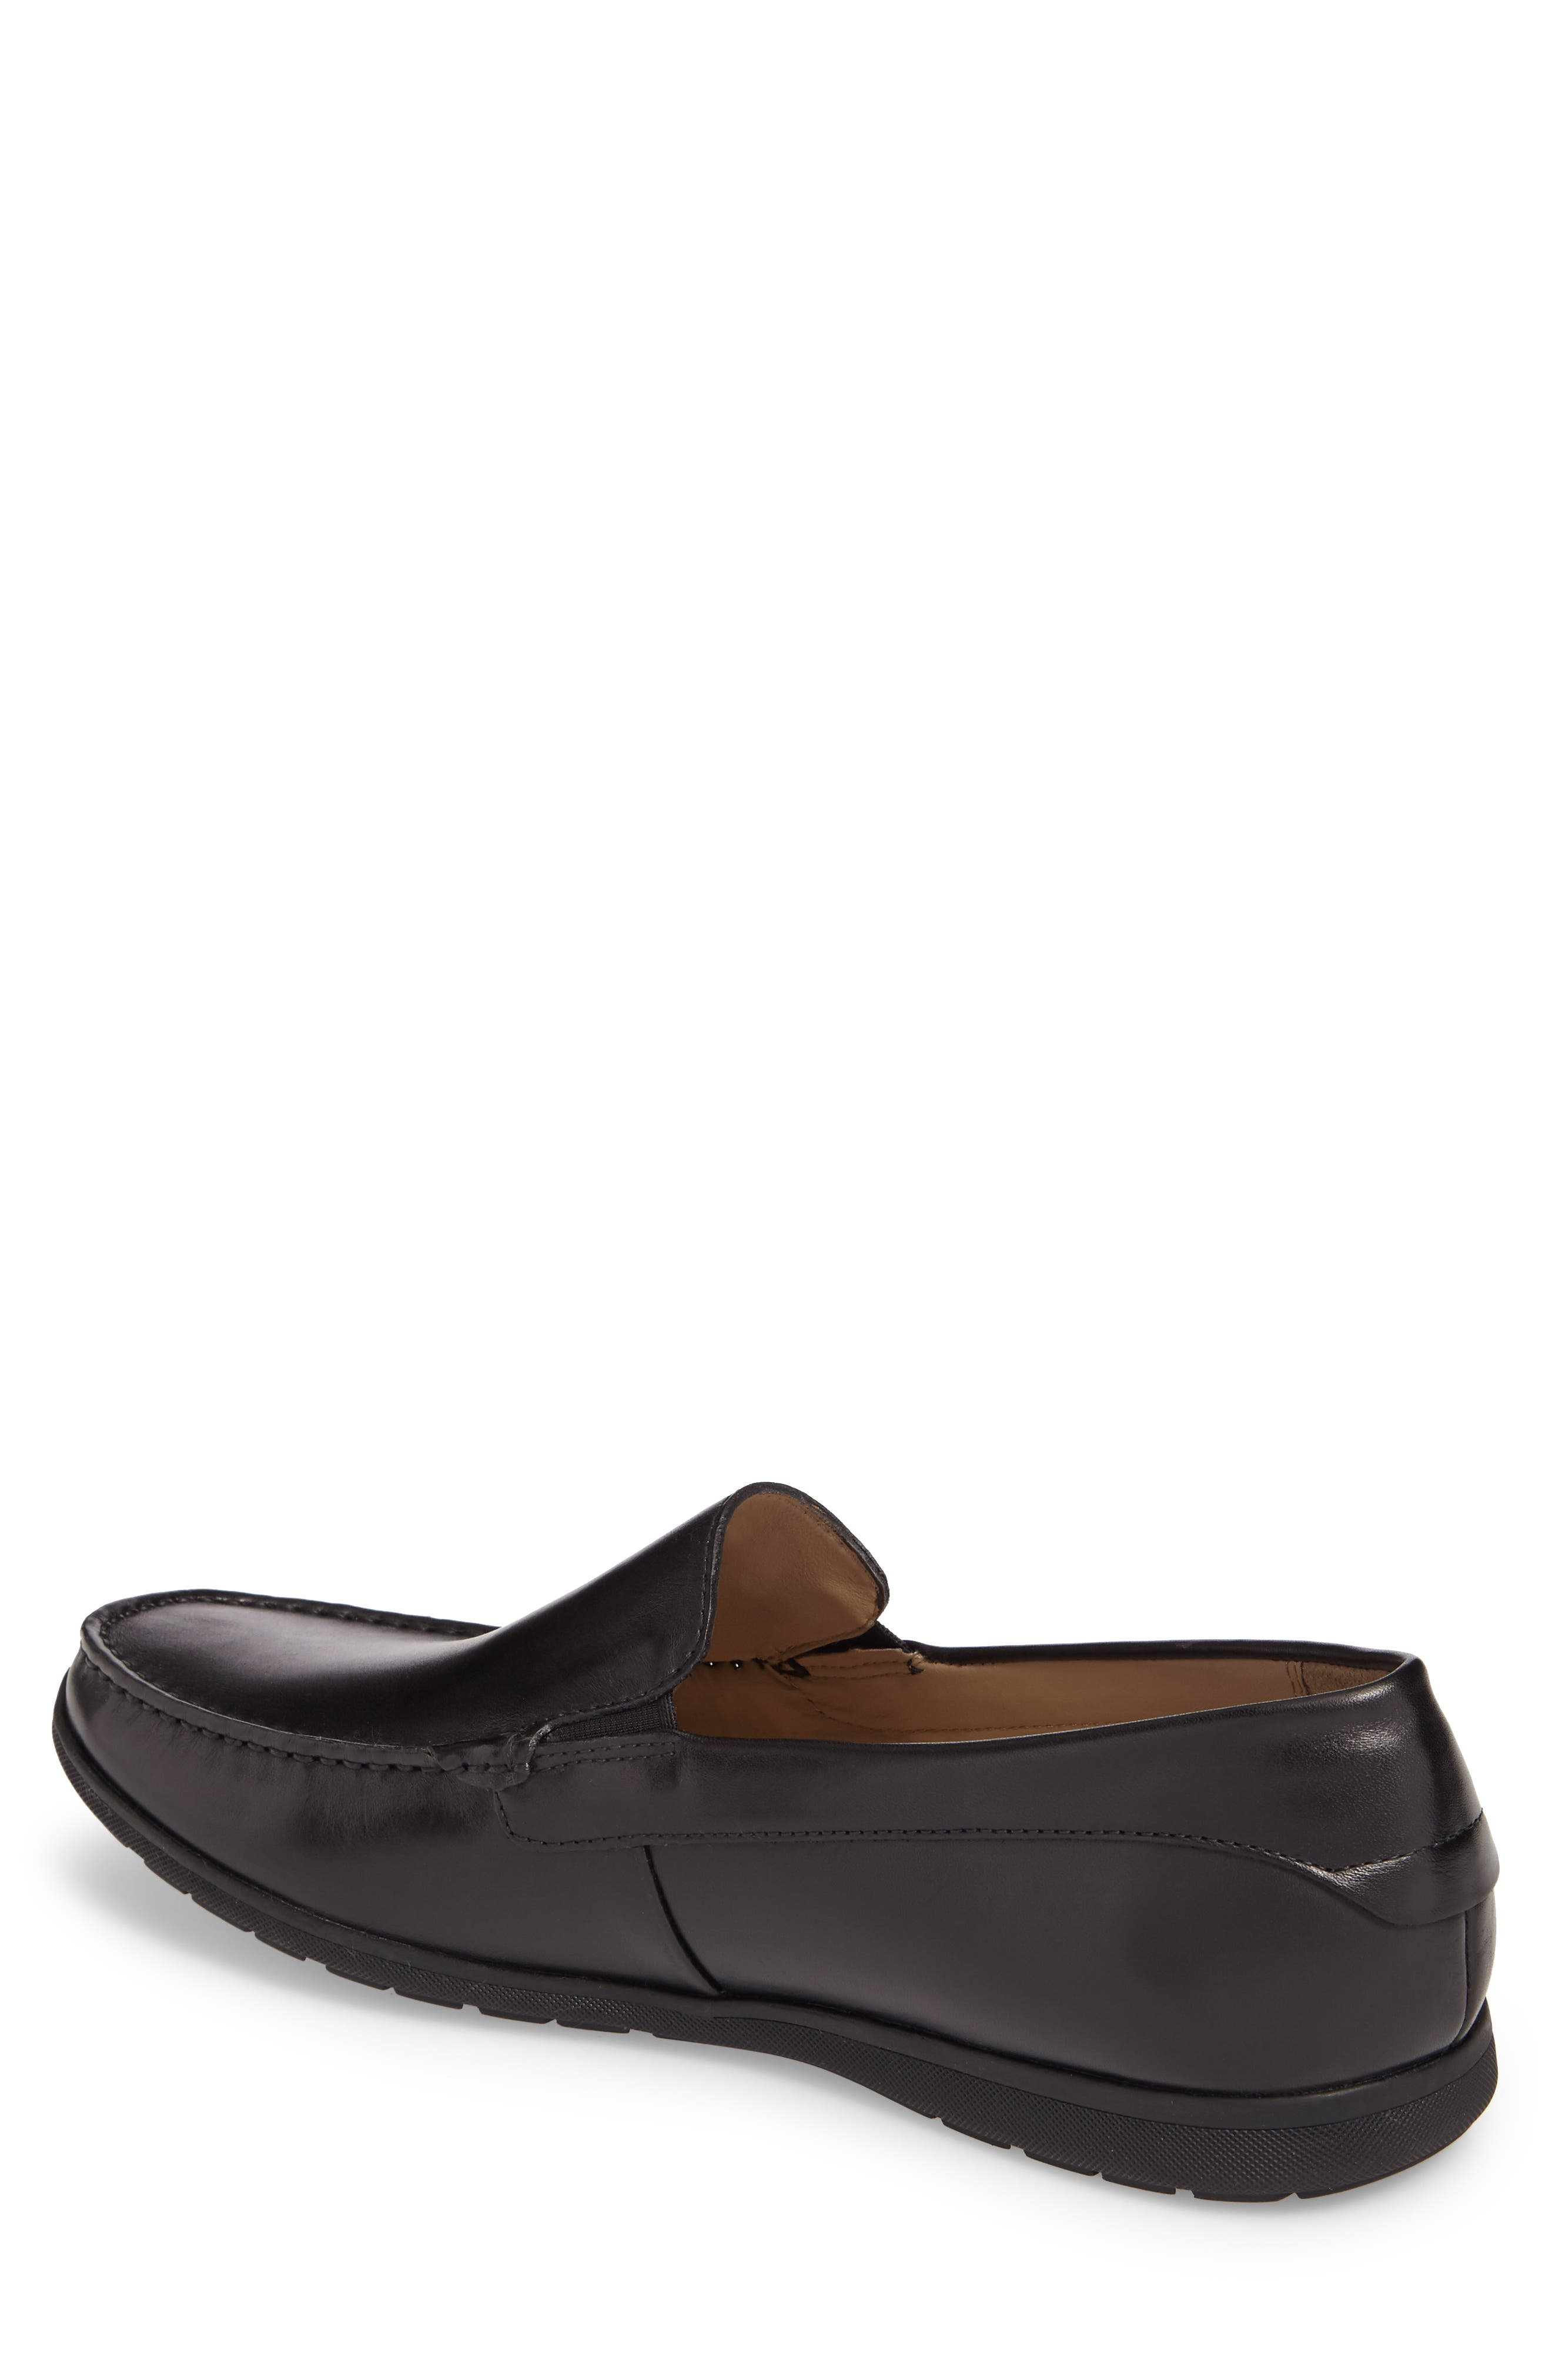 Classic Loafer,                             Alternate thumbnail 2, color,                             001